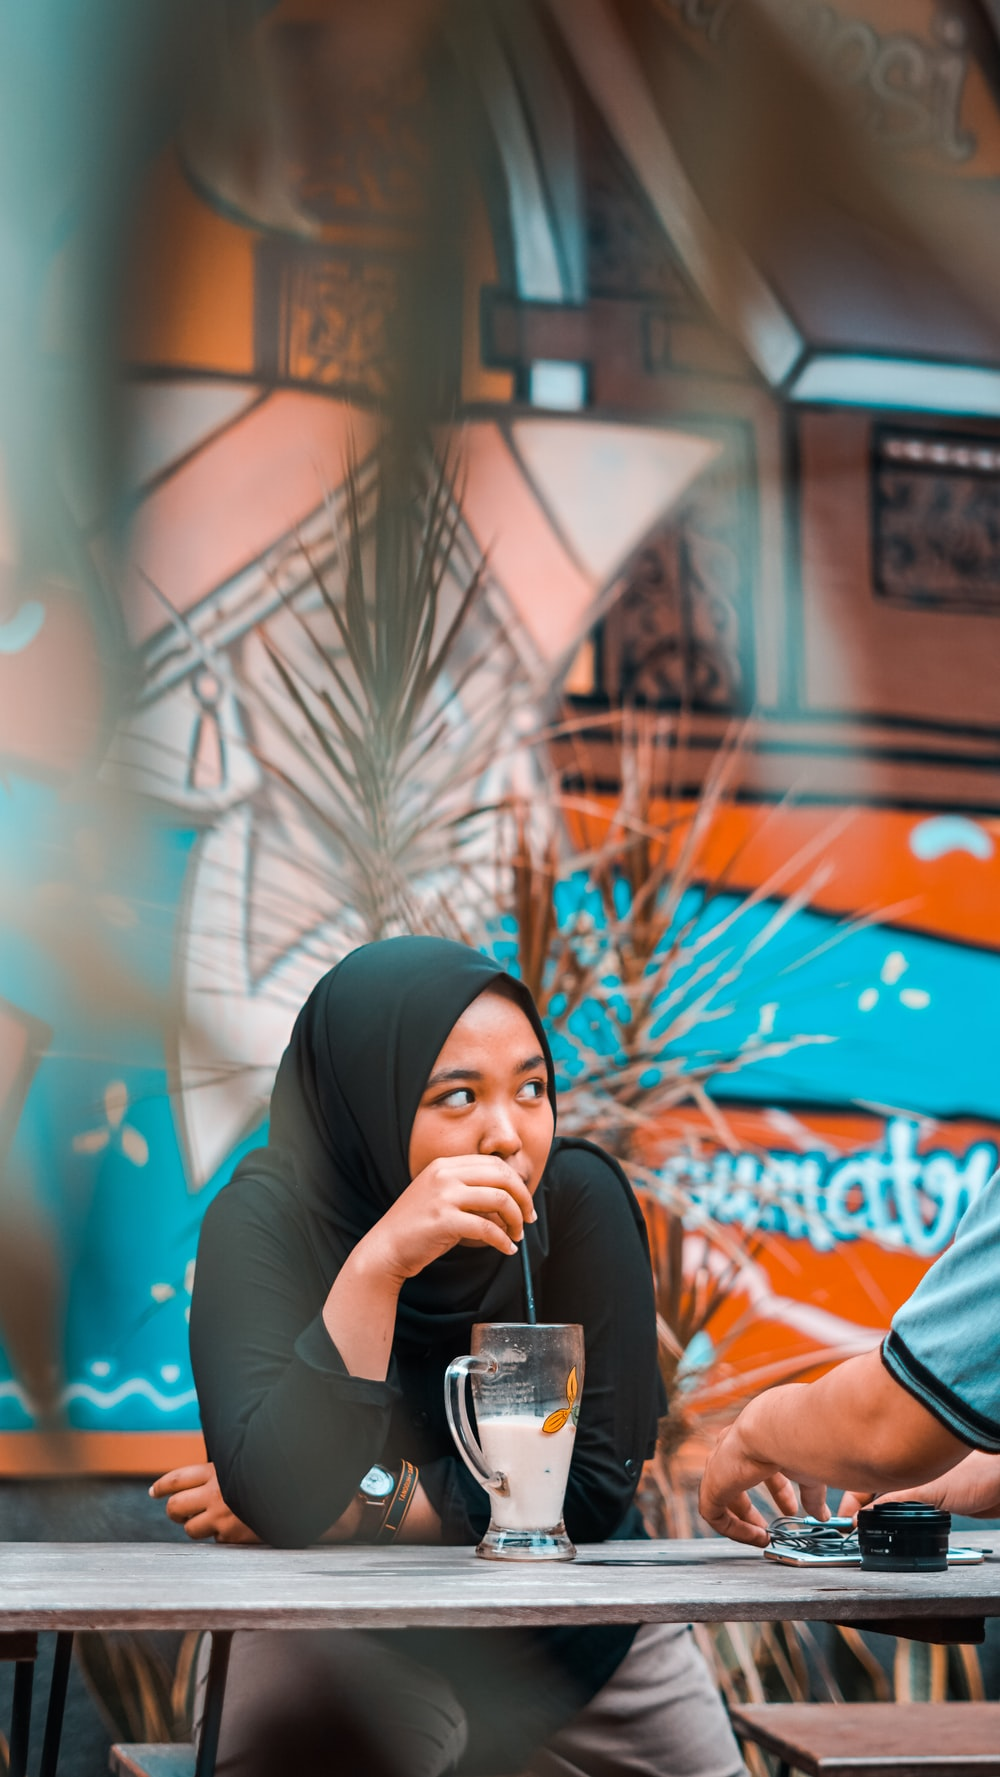 selective focus photography of woman in black hijab while drinking beverage